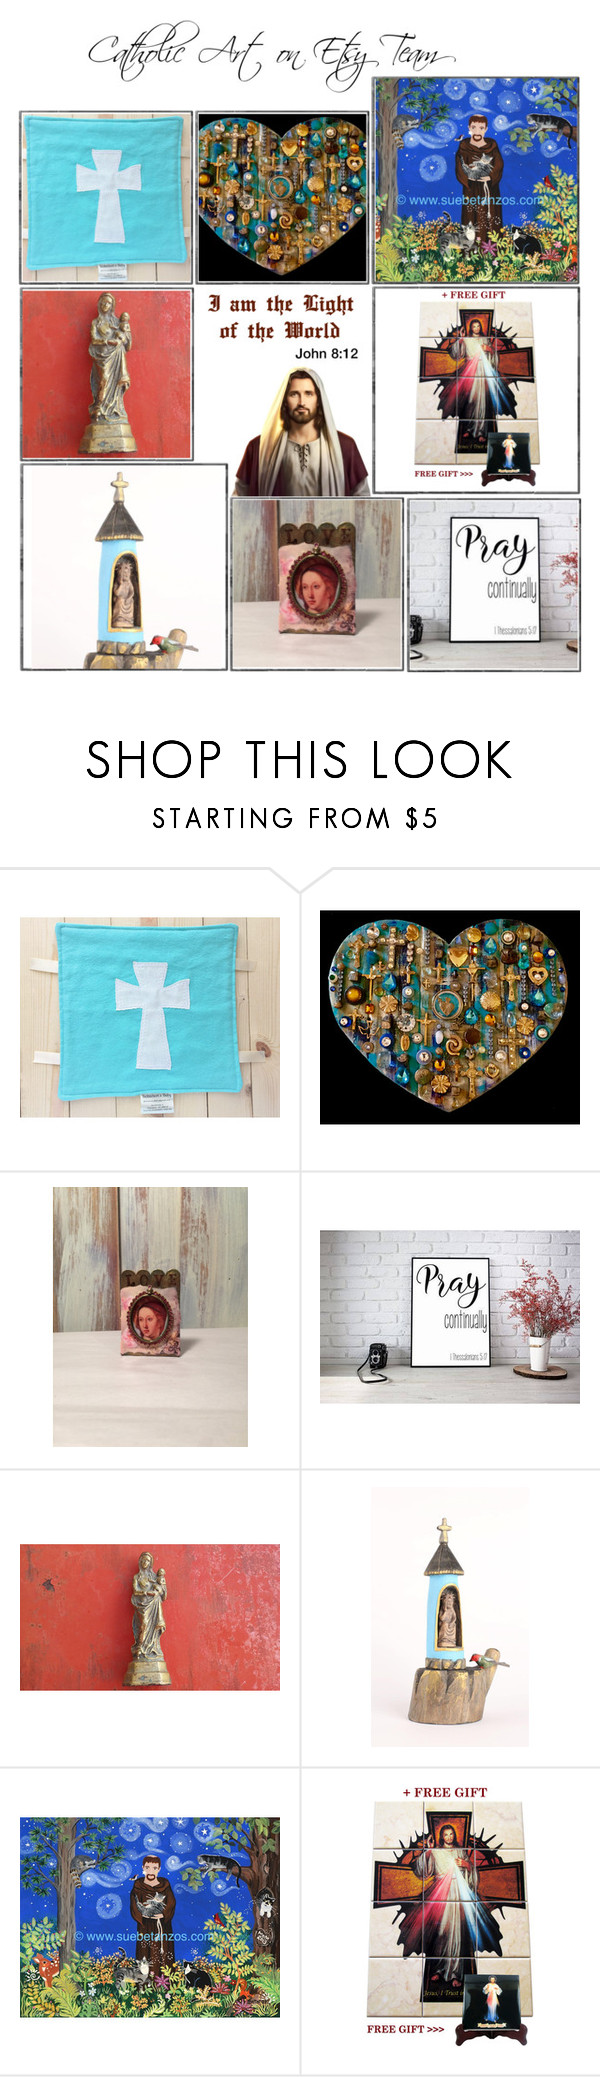 #Religious #gift ideas from the best #Etsy Sellers.  #Catholic #Art on Etsy Team.  Visit the team page: https://www.etsy.com/teams/29607/catholic-art-on-etsy  And Terry's Etsy Store: https://www.etsy.com/shop/TerryTiles2014